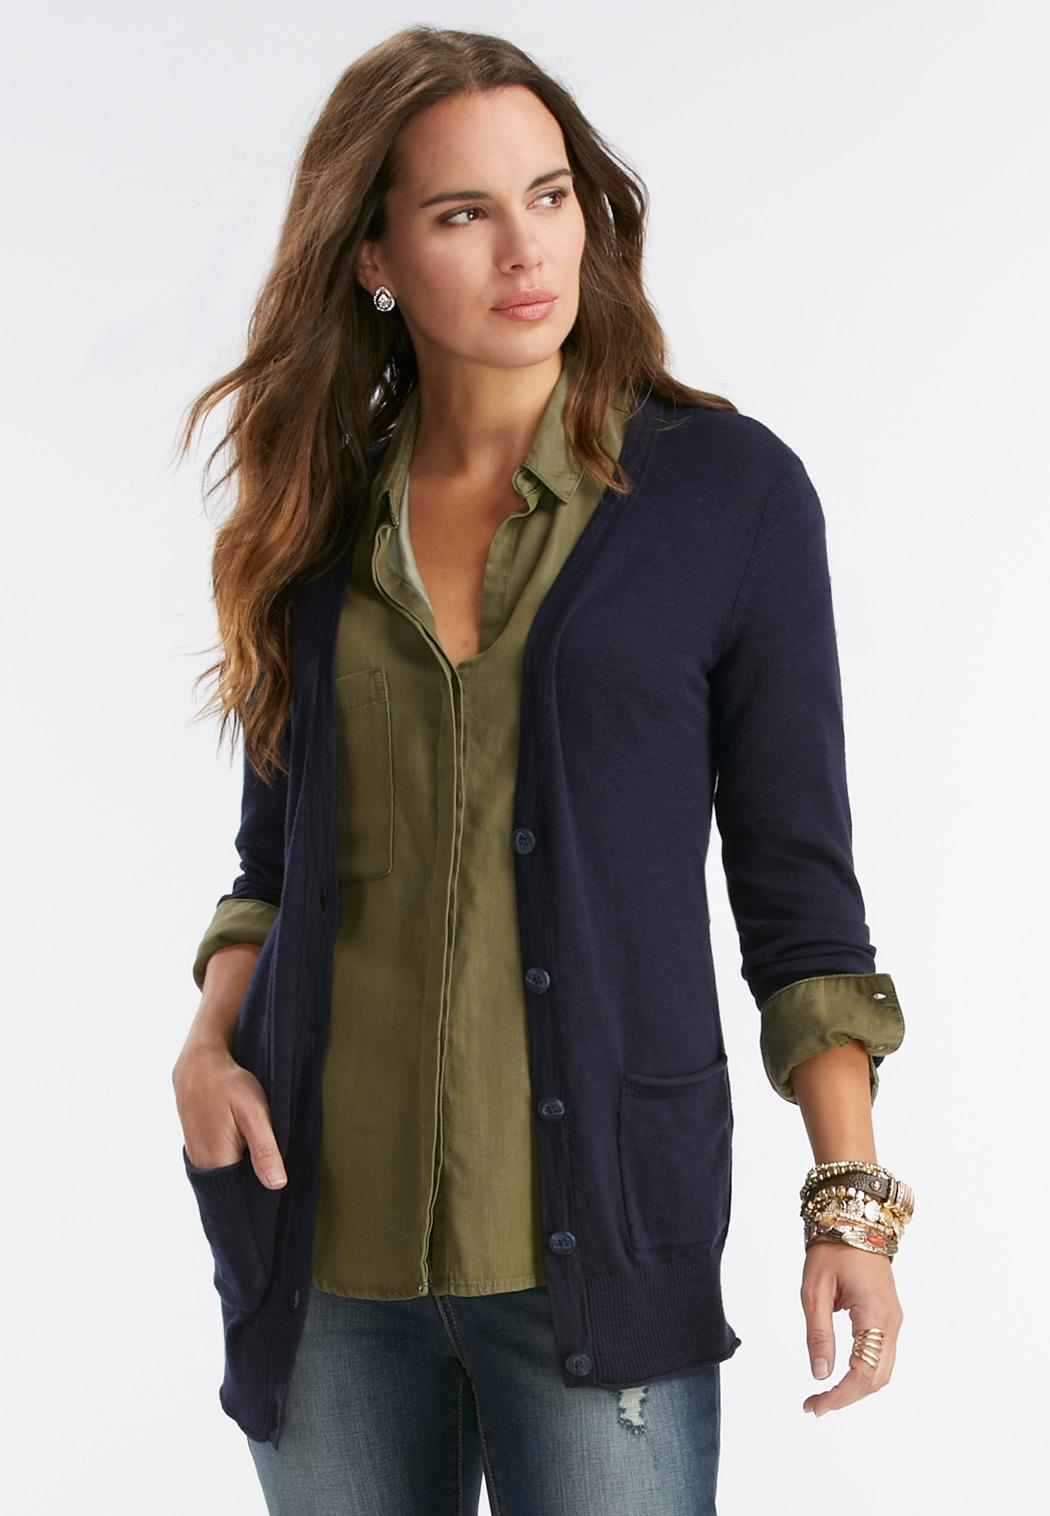 Dress up a pair of casual yoga pants with a long boyfriend cardigan made from silk-blend wool or cashmere. Wear a tank top or pullover tunic underneath, depending on the weather, as boyfriend cardigans make for excellent layering apparel when the temperatures drop.